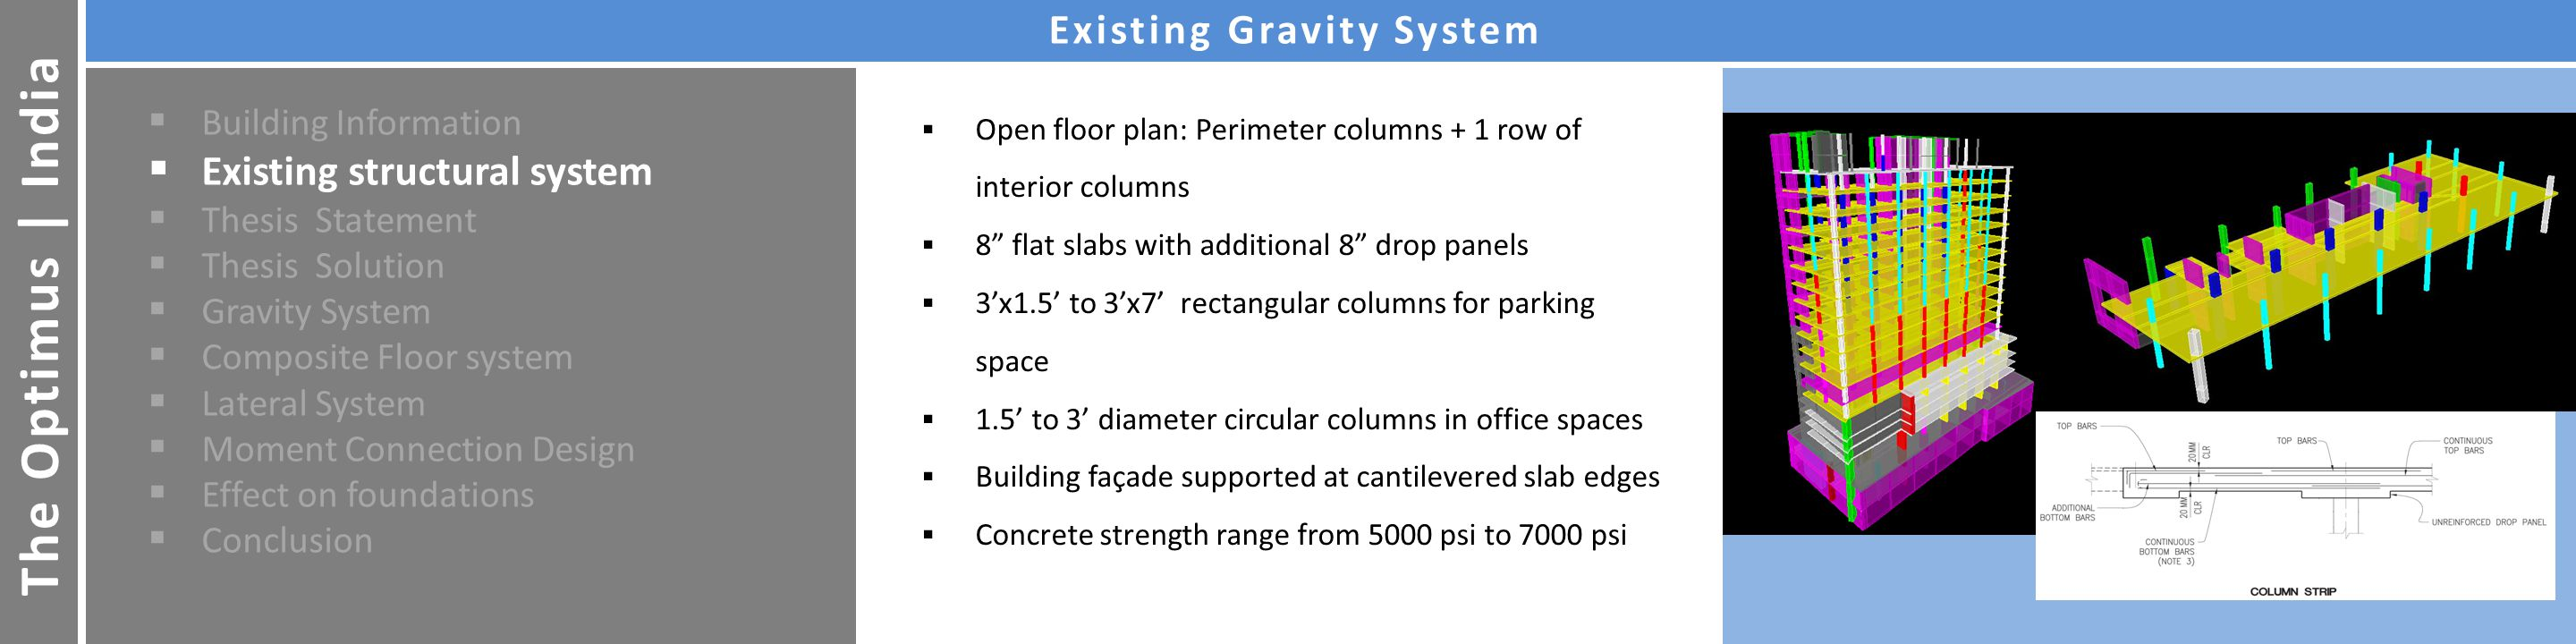 Architecture The Optimus | India Existing Gravity System  Building Information  Existing structural system  Thesis Statement  Thesis Solution  Gravity System  Composite Floor system  Lateral System  Moment Connection Design  Effect on foundations  Conclusion  Open floor plan: Perimeter columns + 1 row of interior columns  8 flat slabs with additional 8 drop panels  3'x1.5' to 3'x7' rectangular columns for parking space  1.5' to 3' diameter circular columns in office spaces  Building façade supported at cantilevered slab edges  Concrete strength range from 5000 psi to 7000 psi